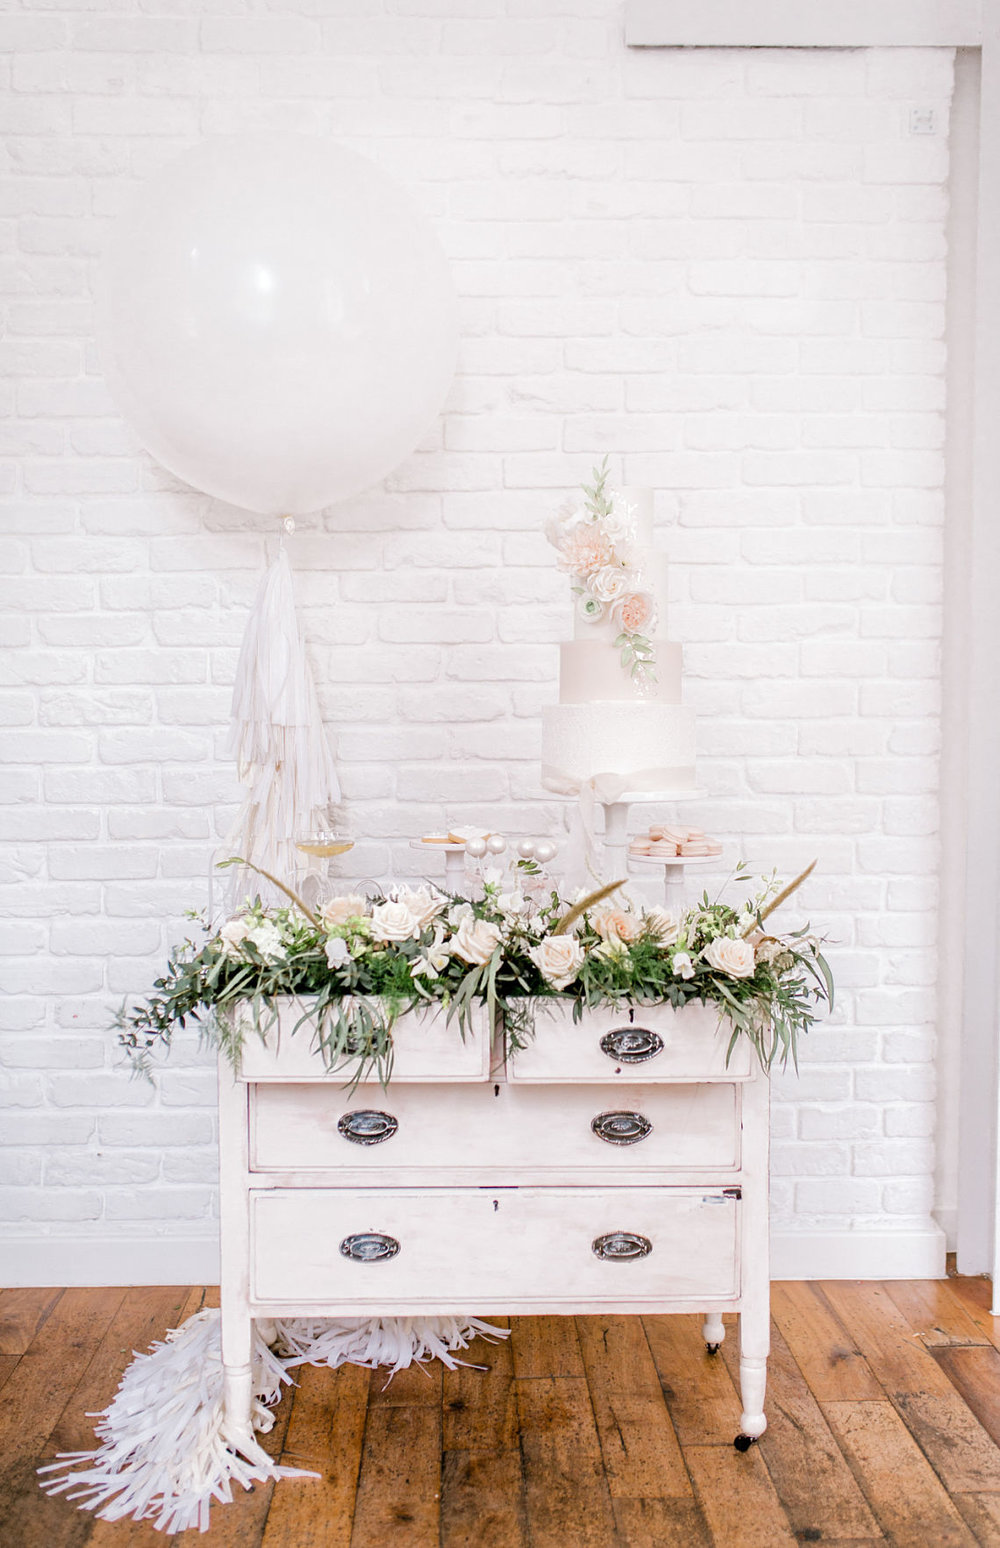 wedding dessert table - wedding styling - essex wedding planner